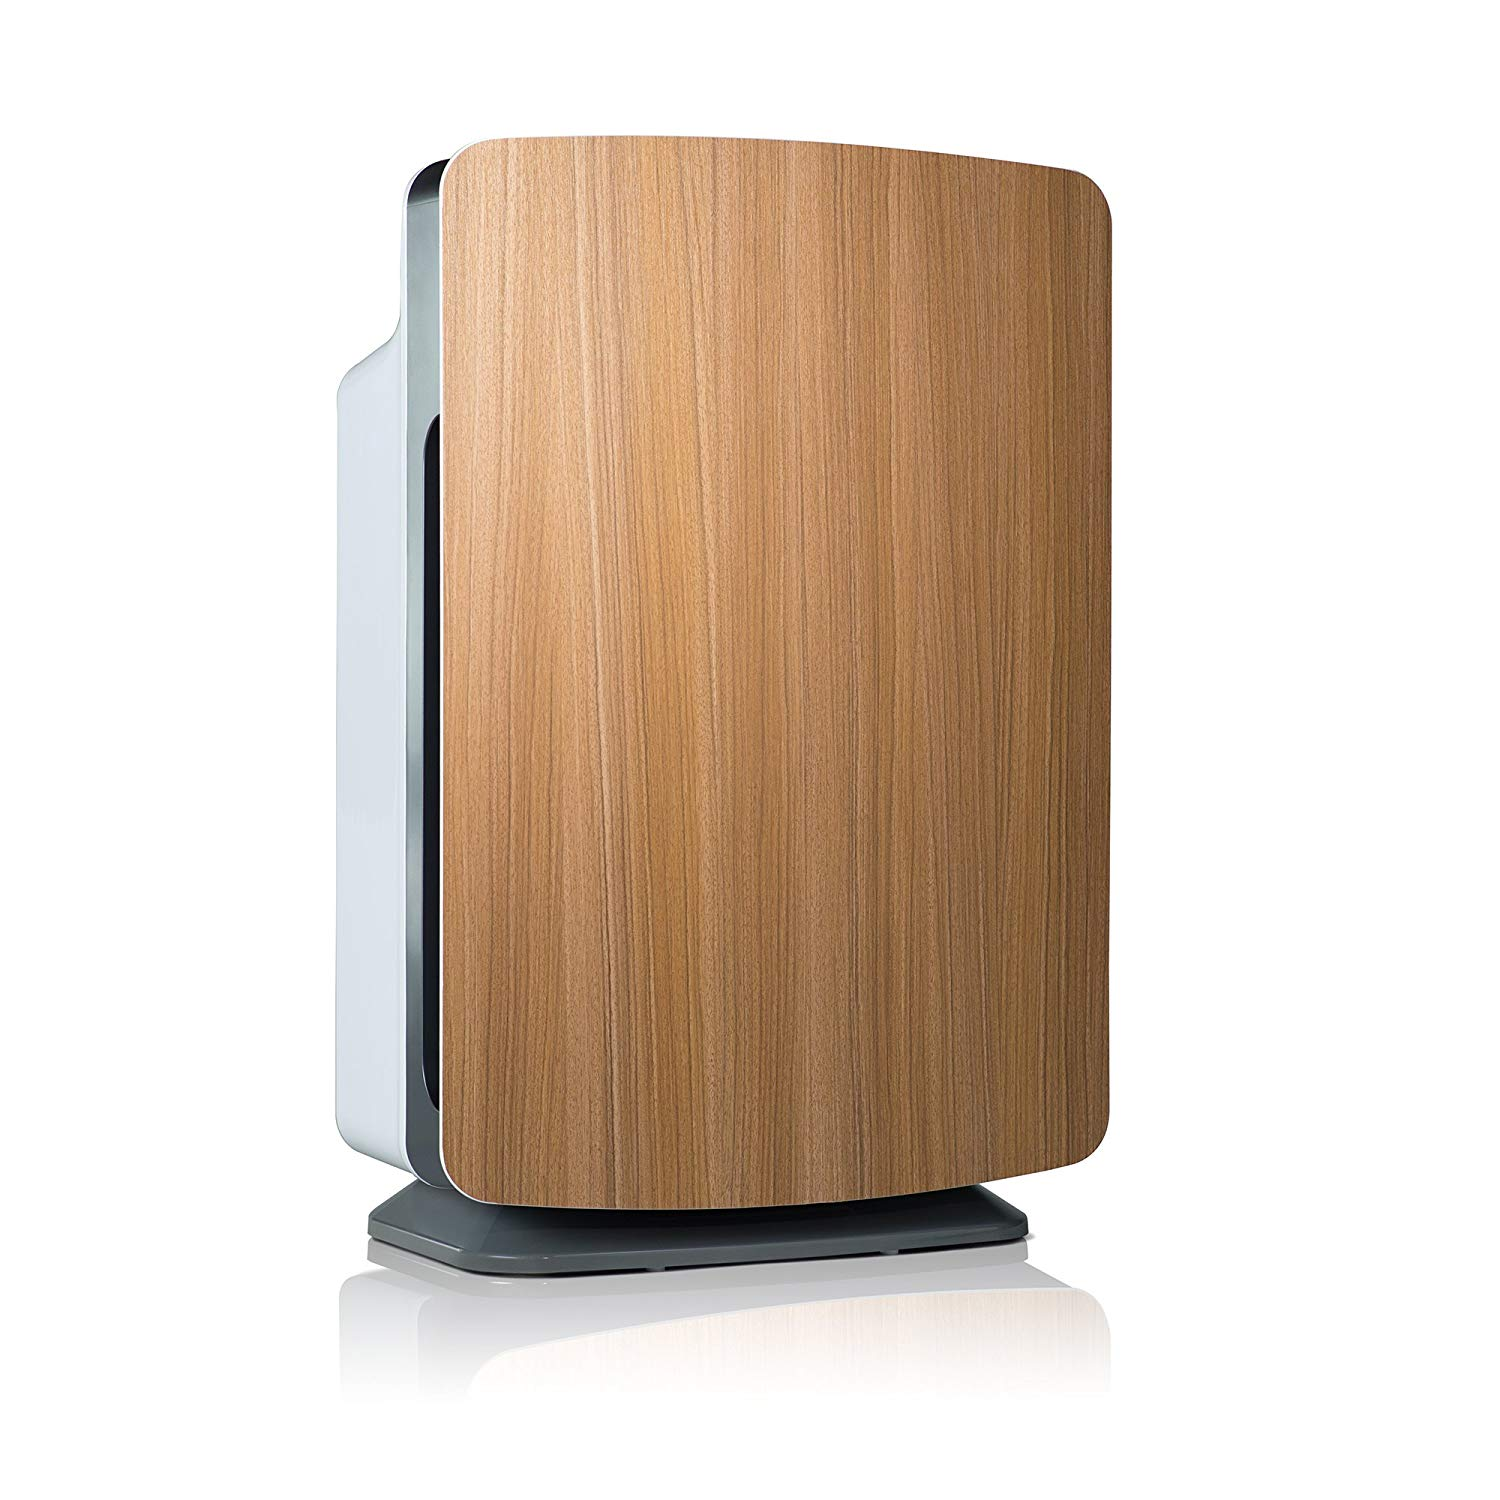 Alen Breath Smart best air purifier topratedhomeproducts